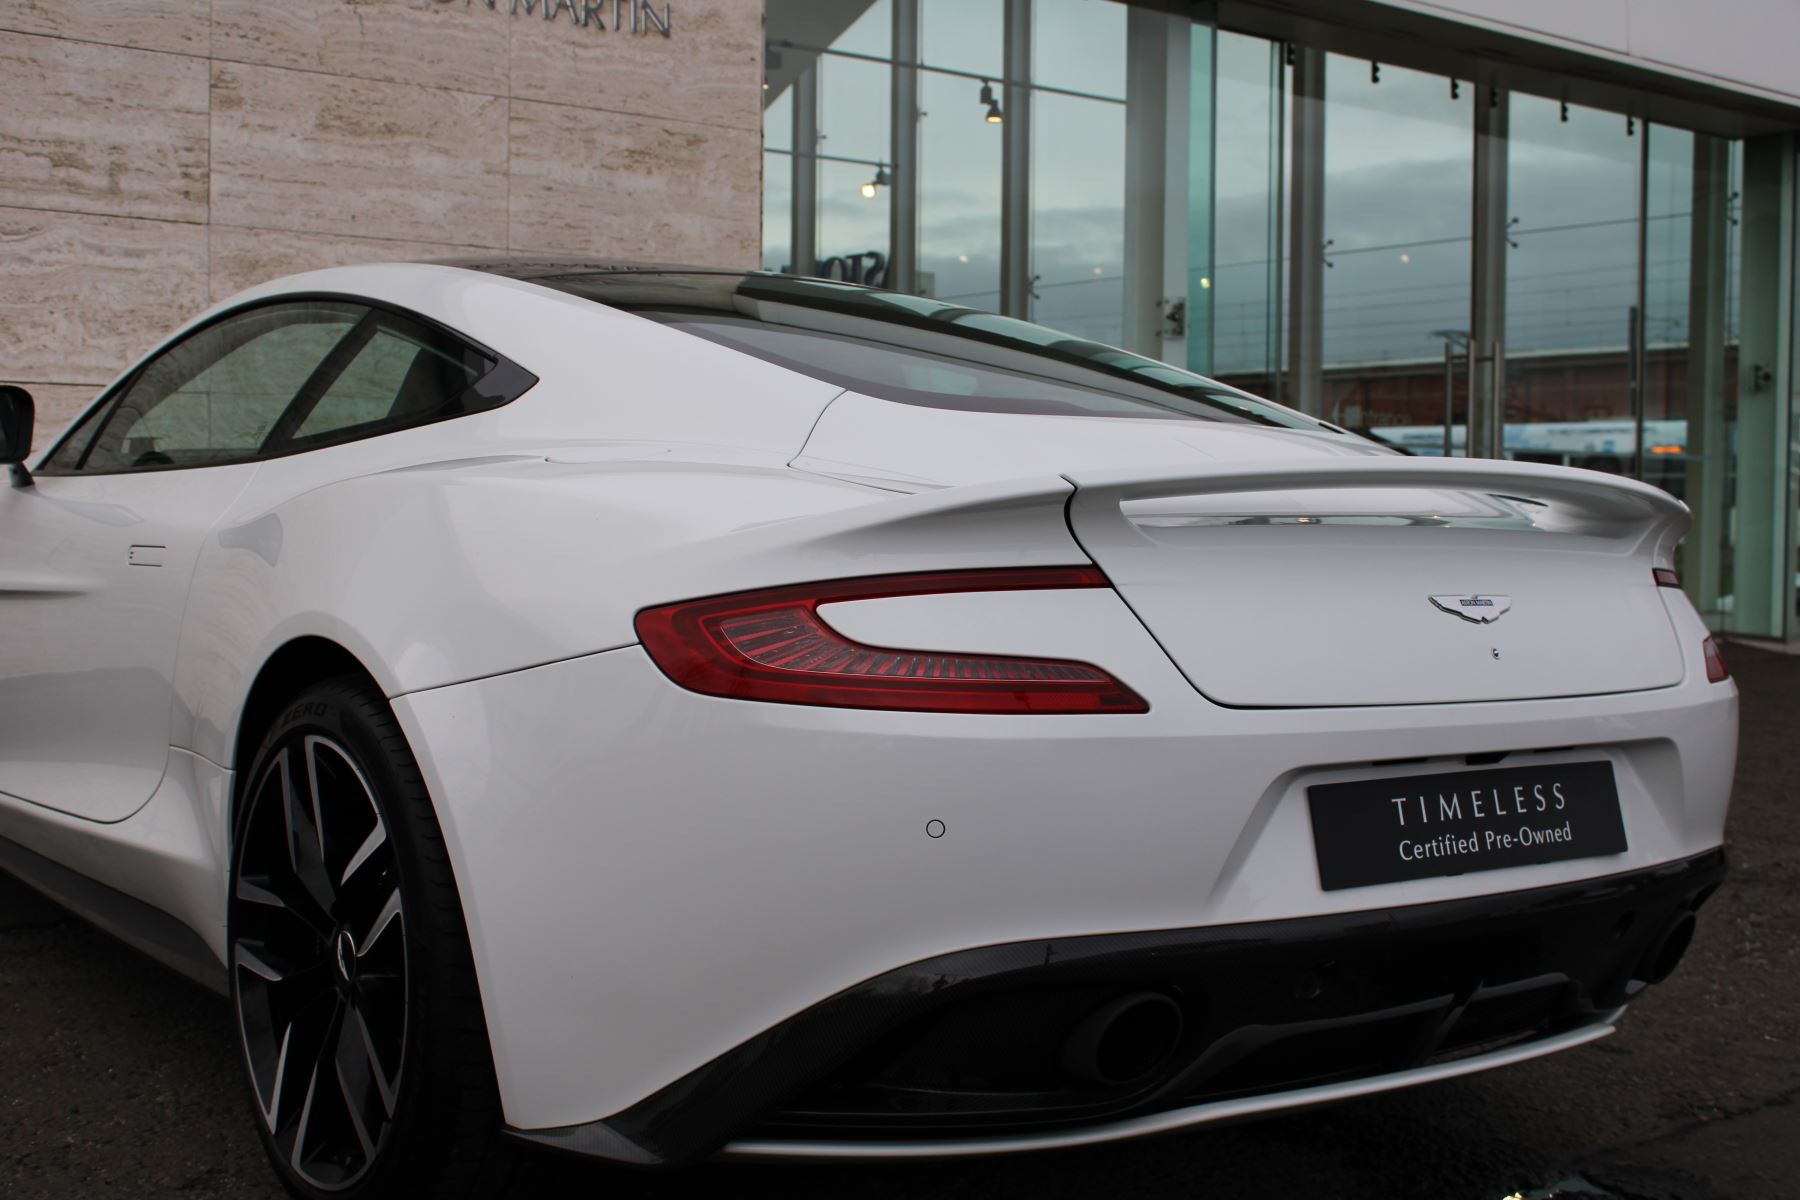 Aston Martin Vanquish V12 [568] 2+2 2dr Touchtronic image 19